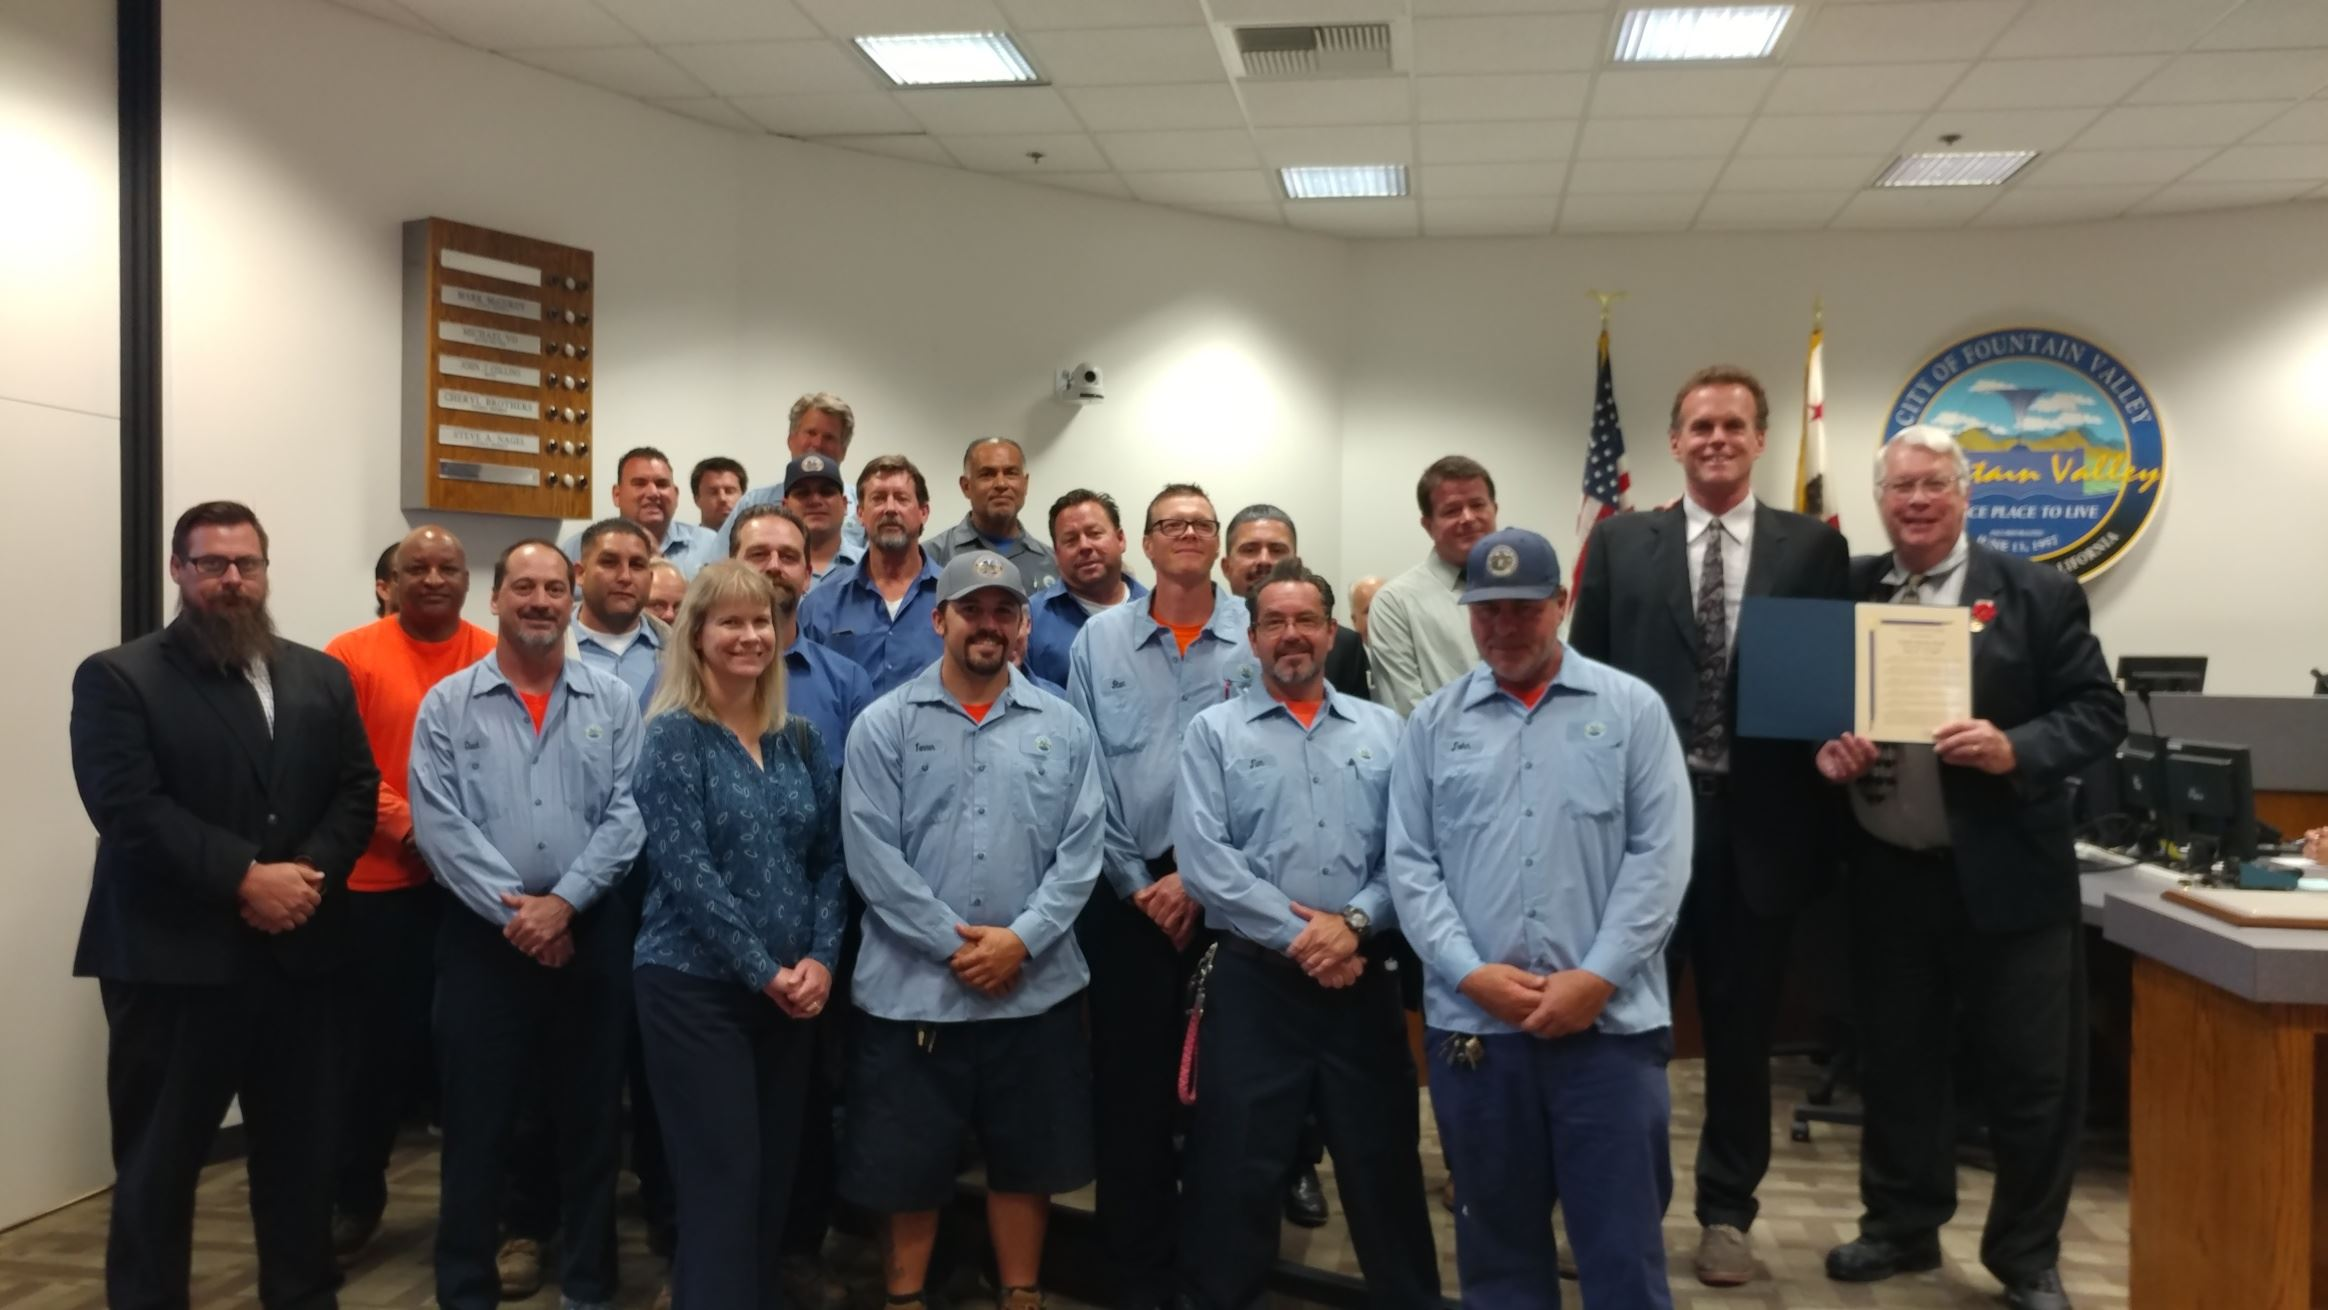 Proclamation Recognizing May 21-27 as Public Works Week